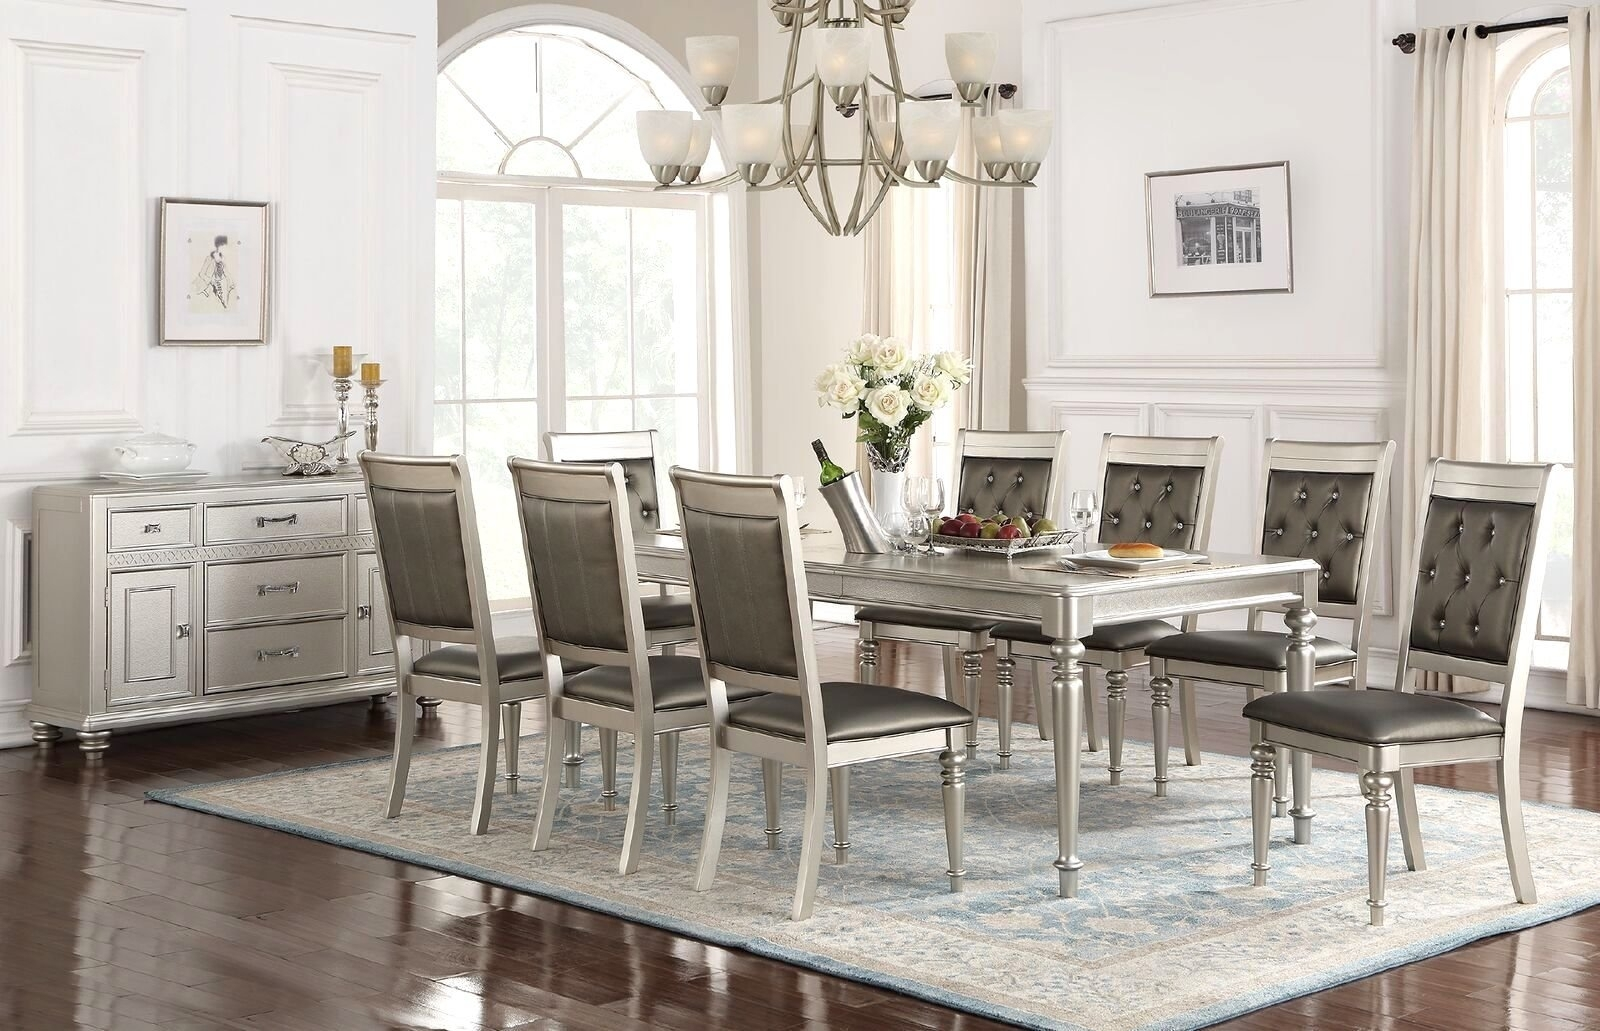 9 Piece Dining Sets You'll Love | Wayfair With Regard To Latest Caira Black 5 Piece Round Dining Sets With Diamond Back Side Chairs (Photo 17 of 20)